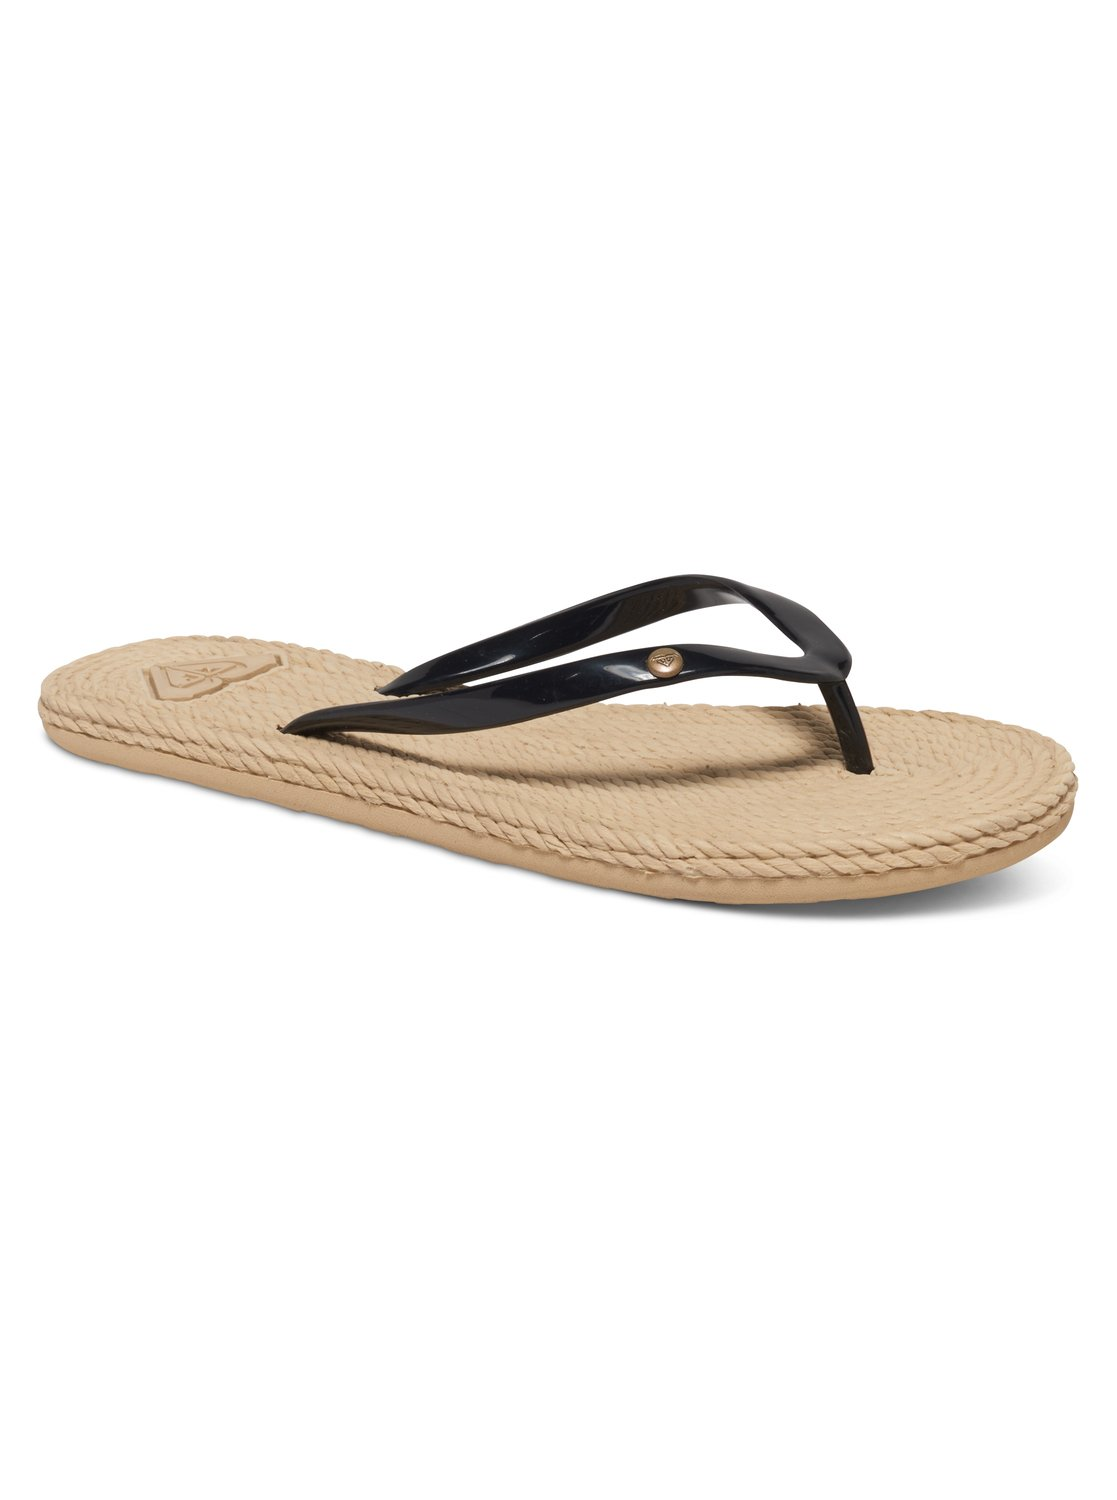 Roxy South Beach Flip-Flops